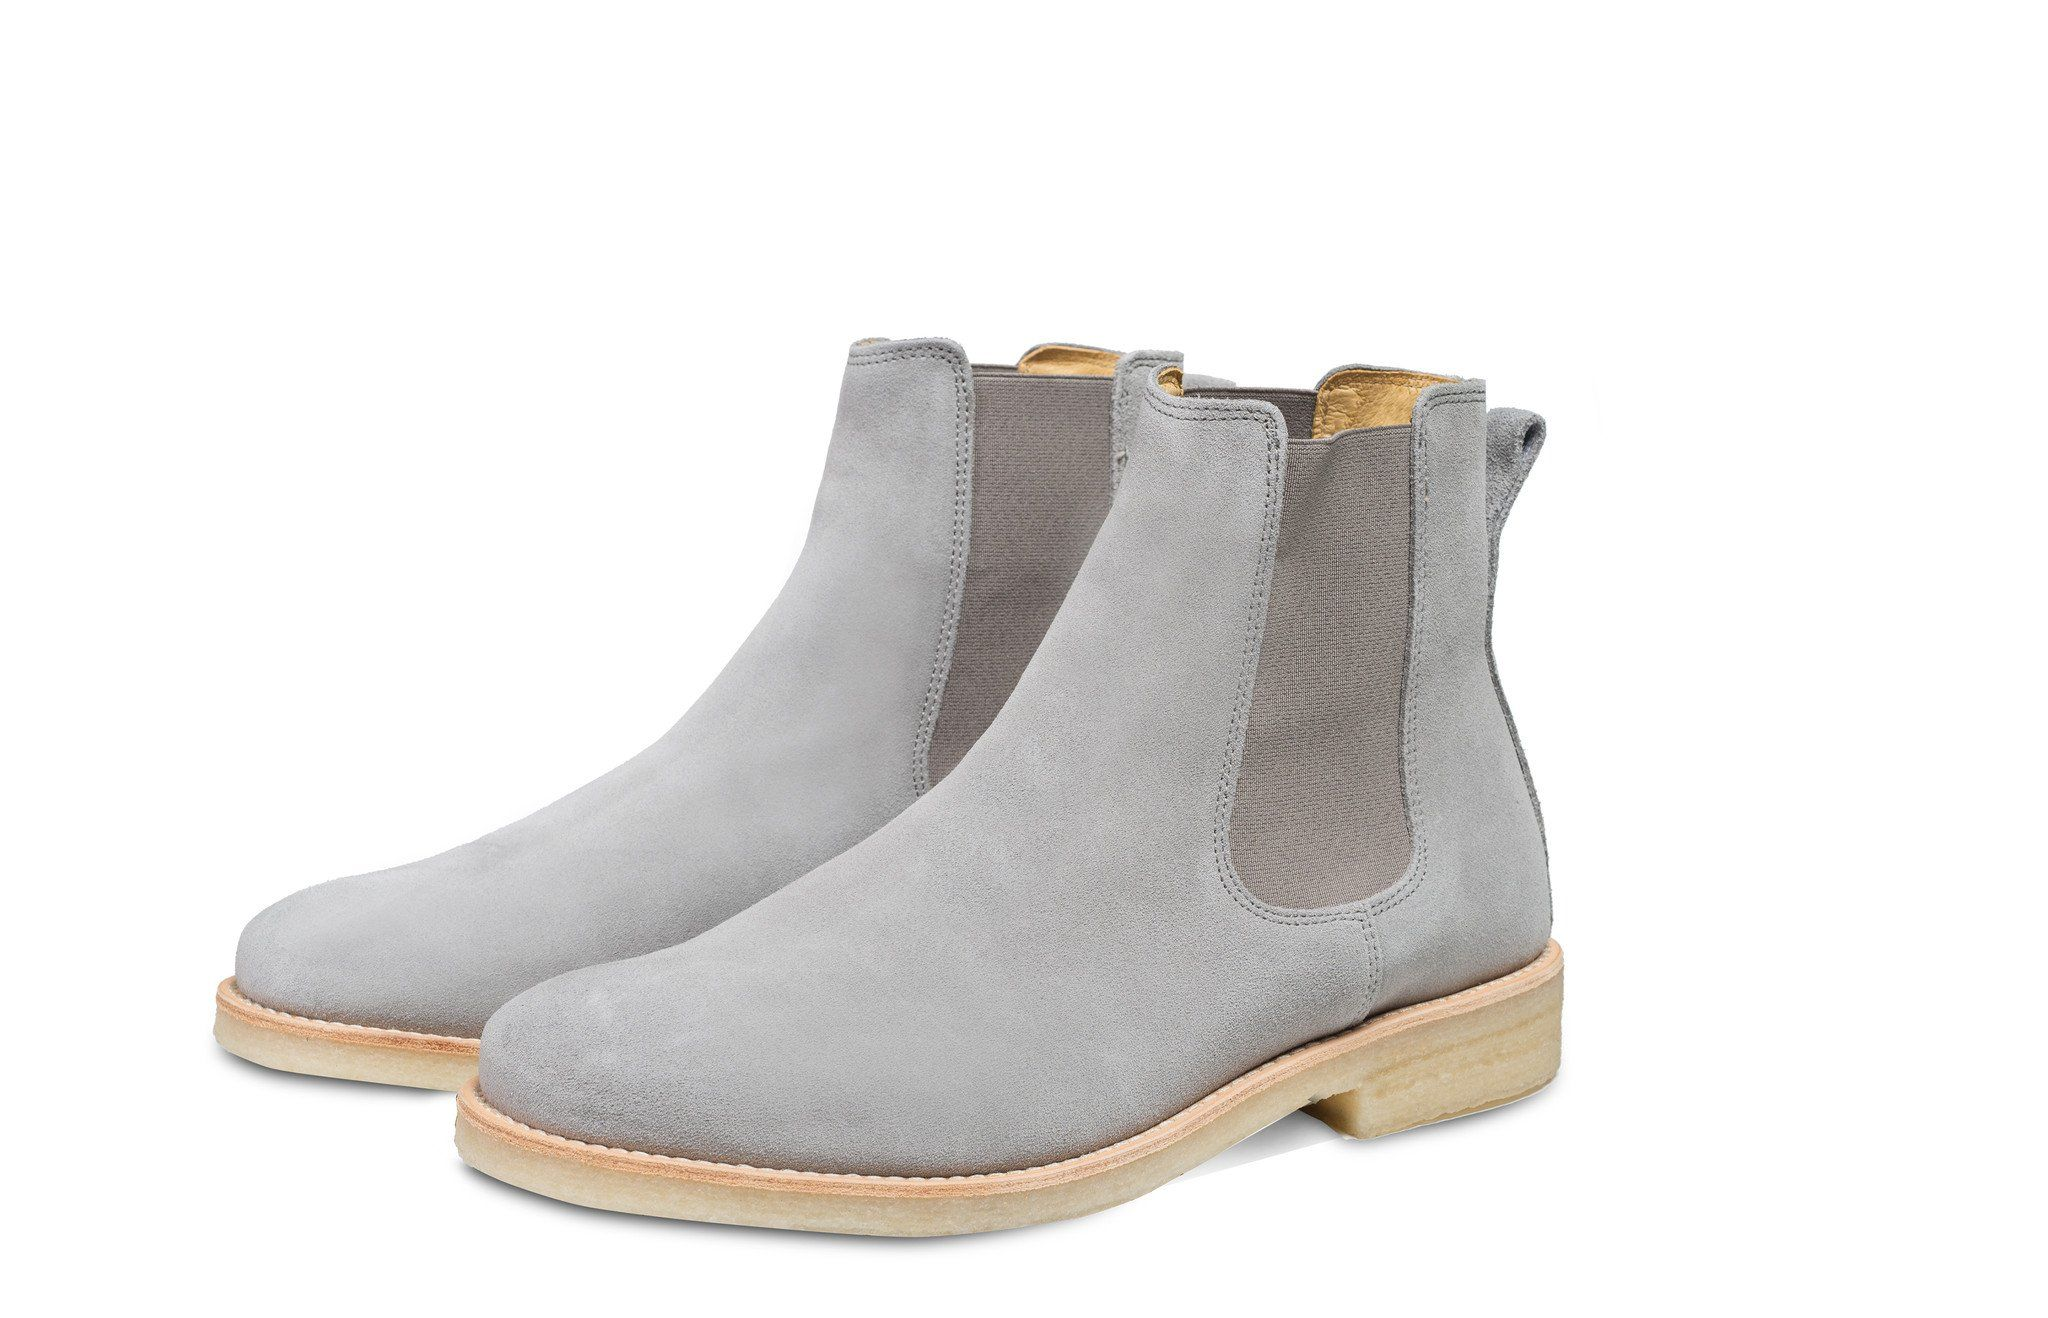 2f694348e43f5 Chelsea Boots - Light Grey | Shoes To Buy | Boots, Chelsea boots ...